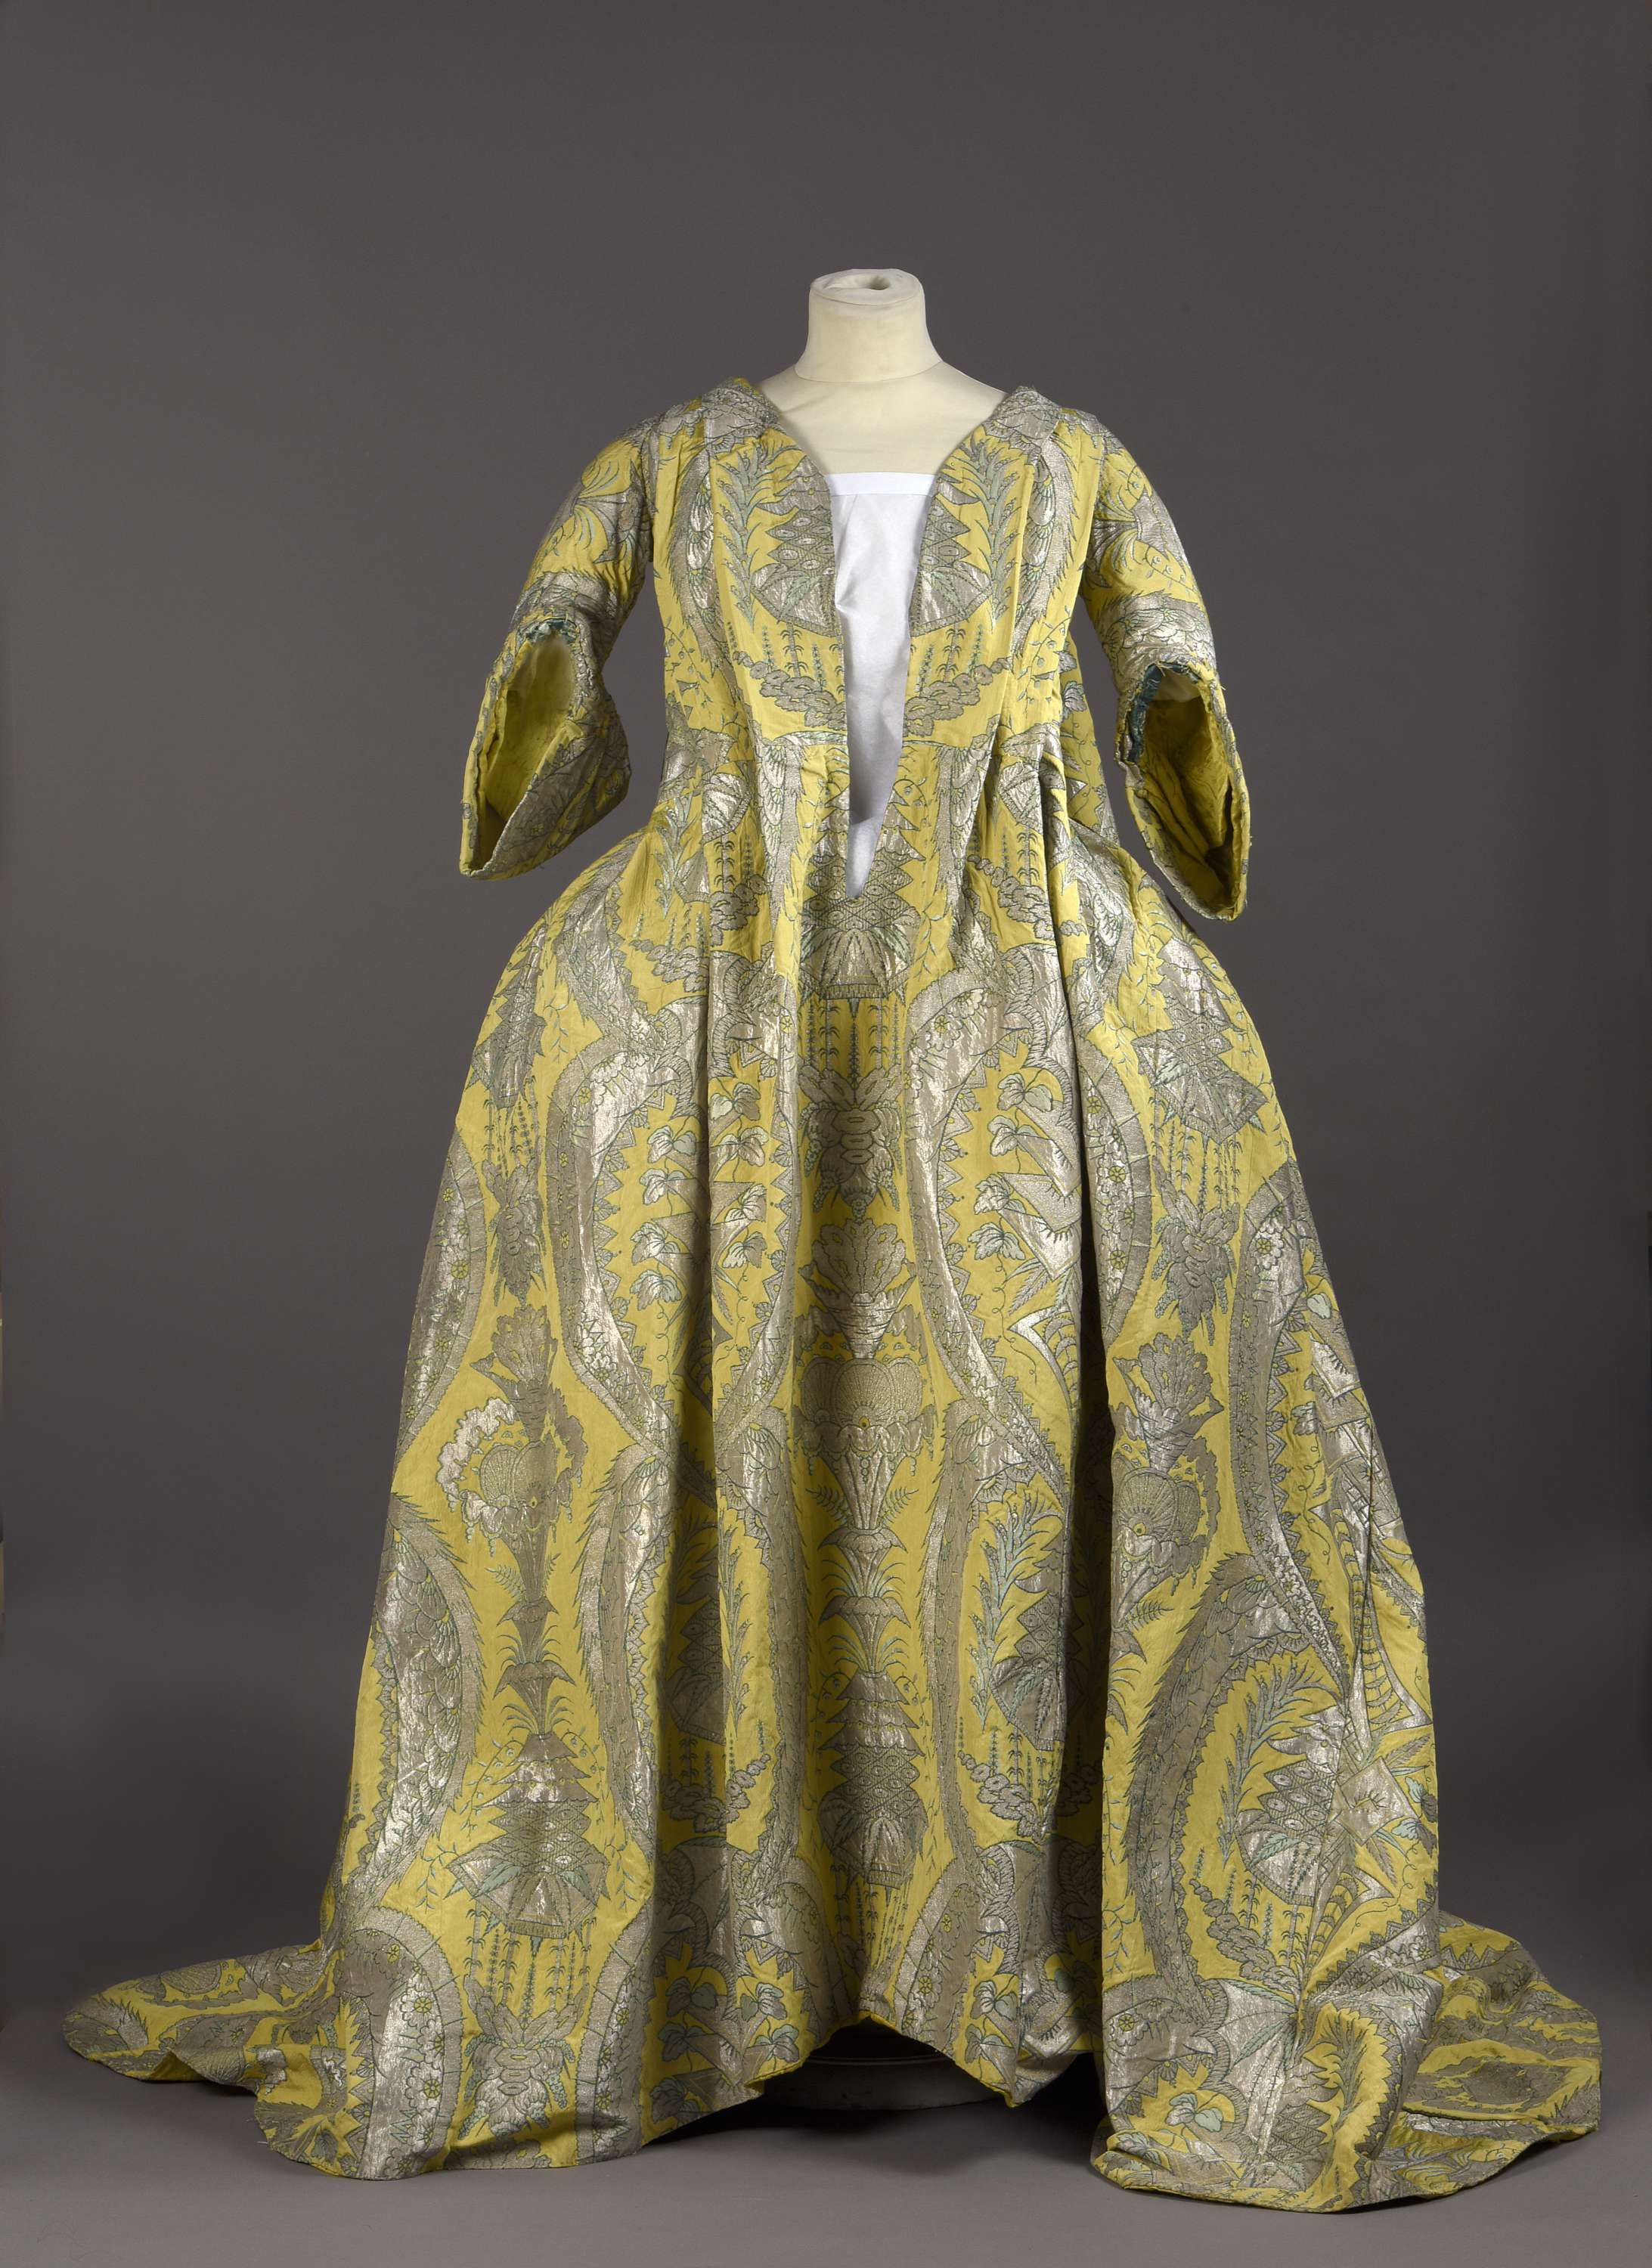 Vive Le Confort! For Corseted Courtiers, This Dress Was A French Revolution